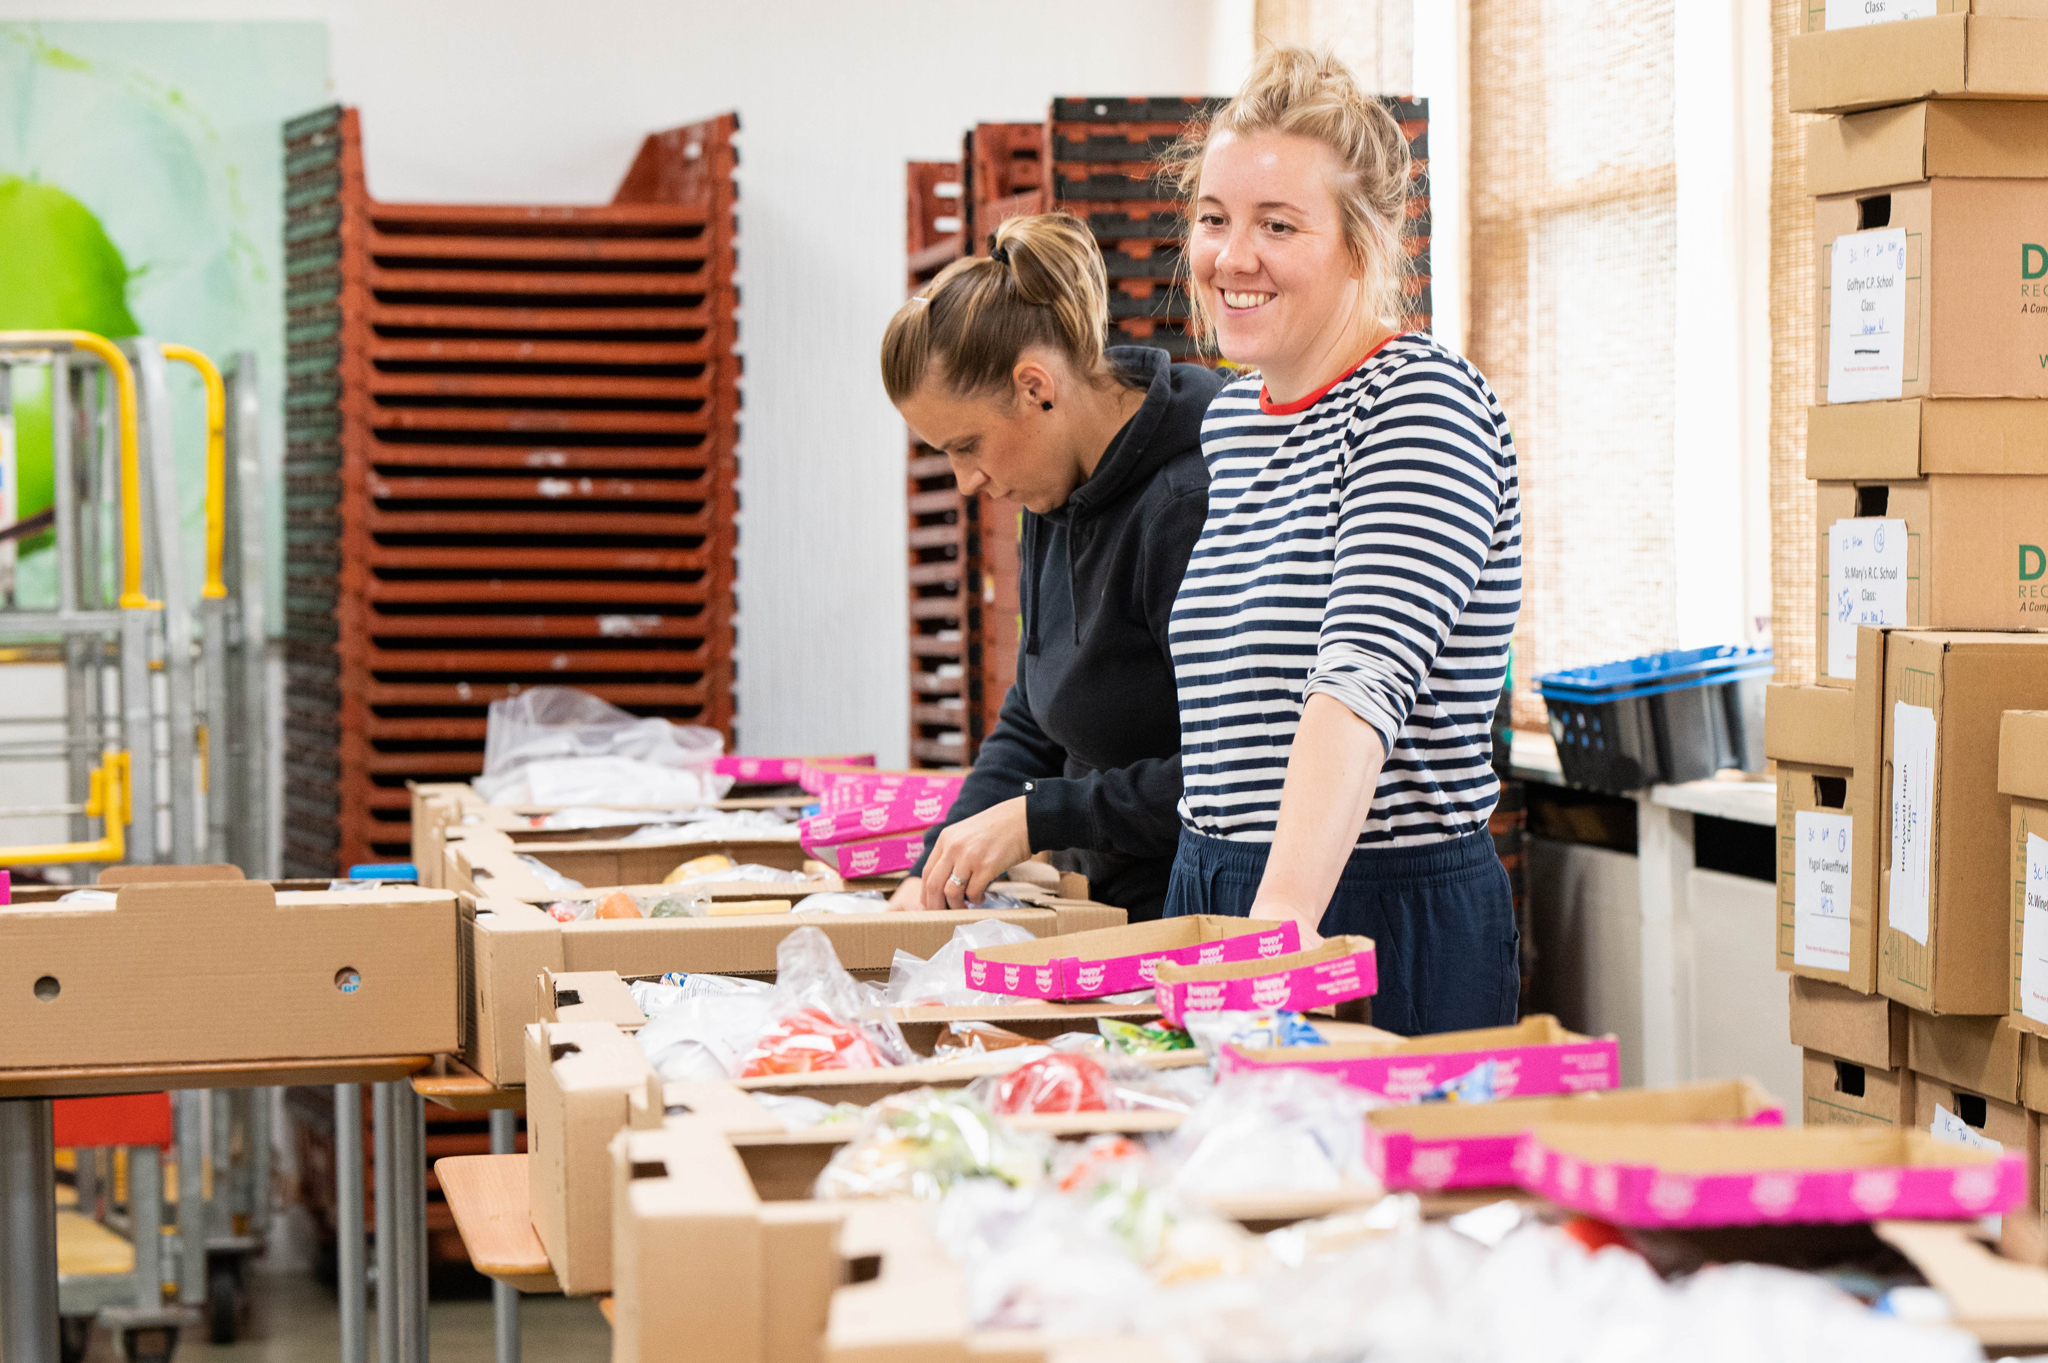 Two volunteers prepare food boxes for the community, one smiles broadly